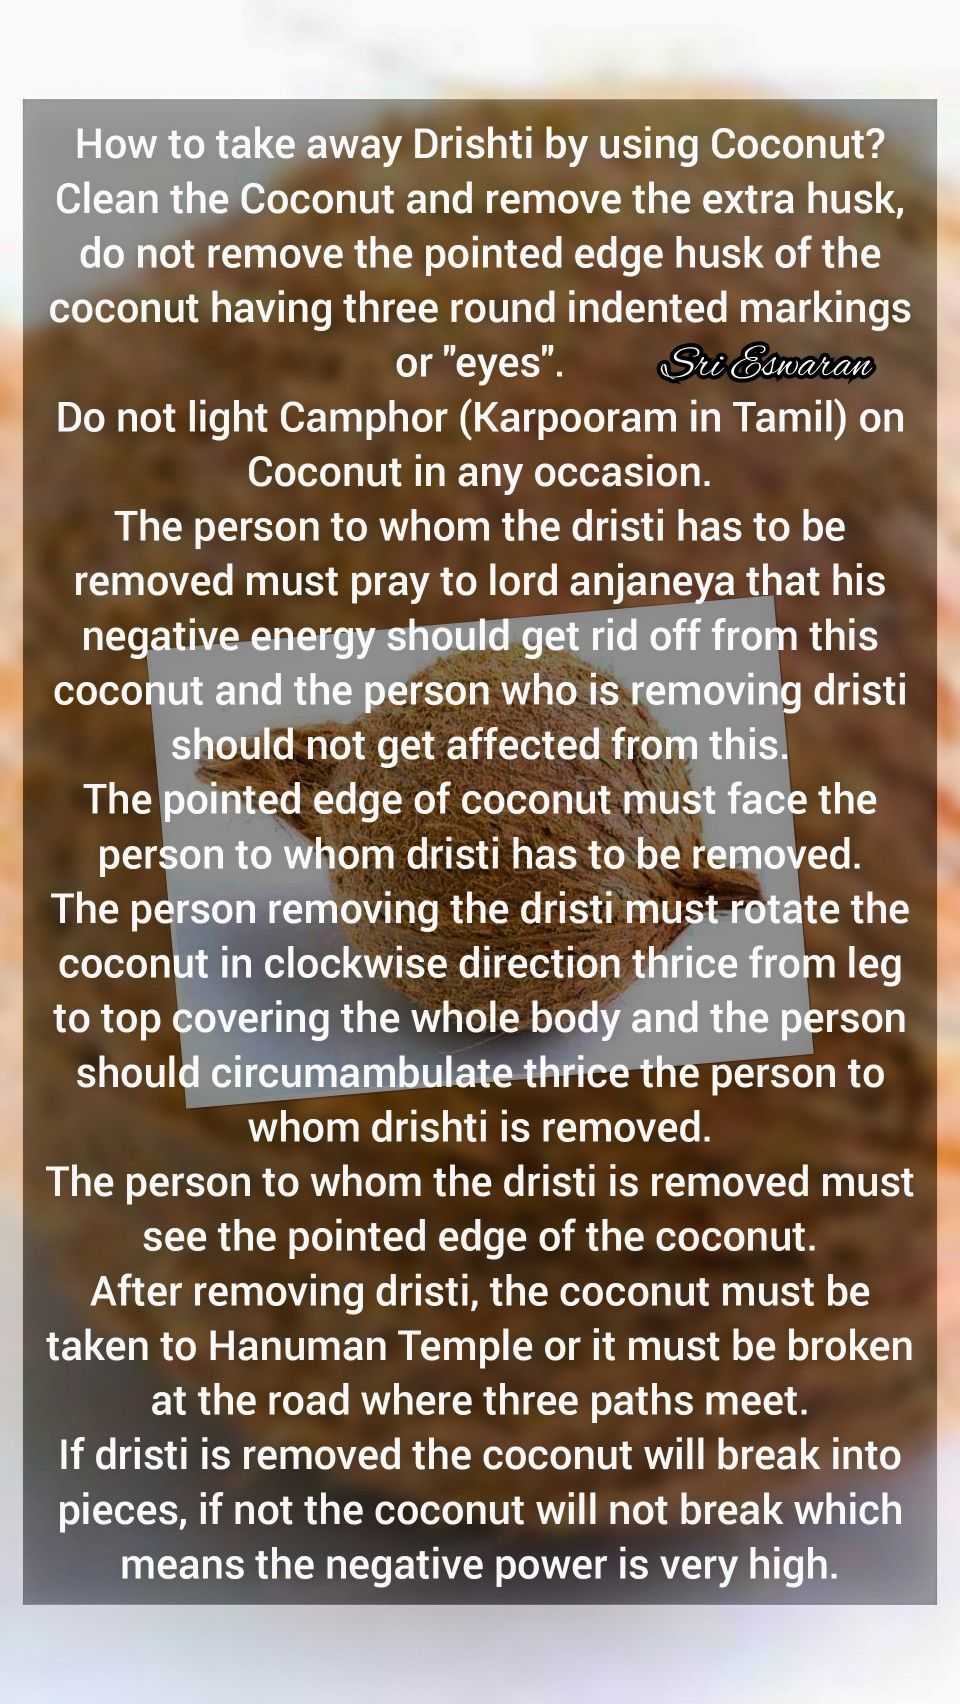 How to take away Drishti by using Coconut? Clean the Coconut